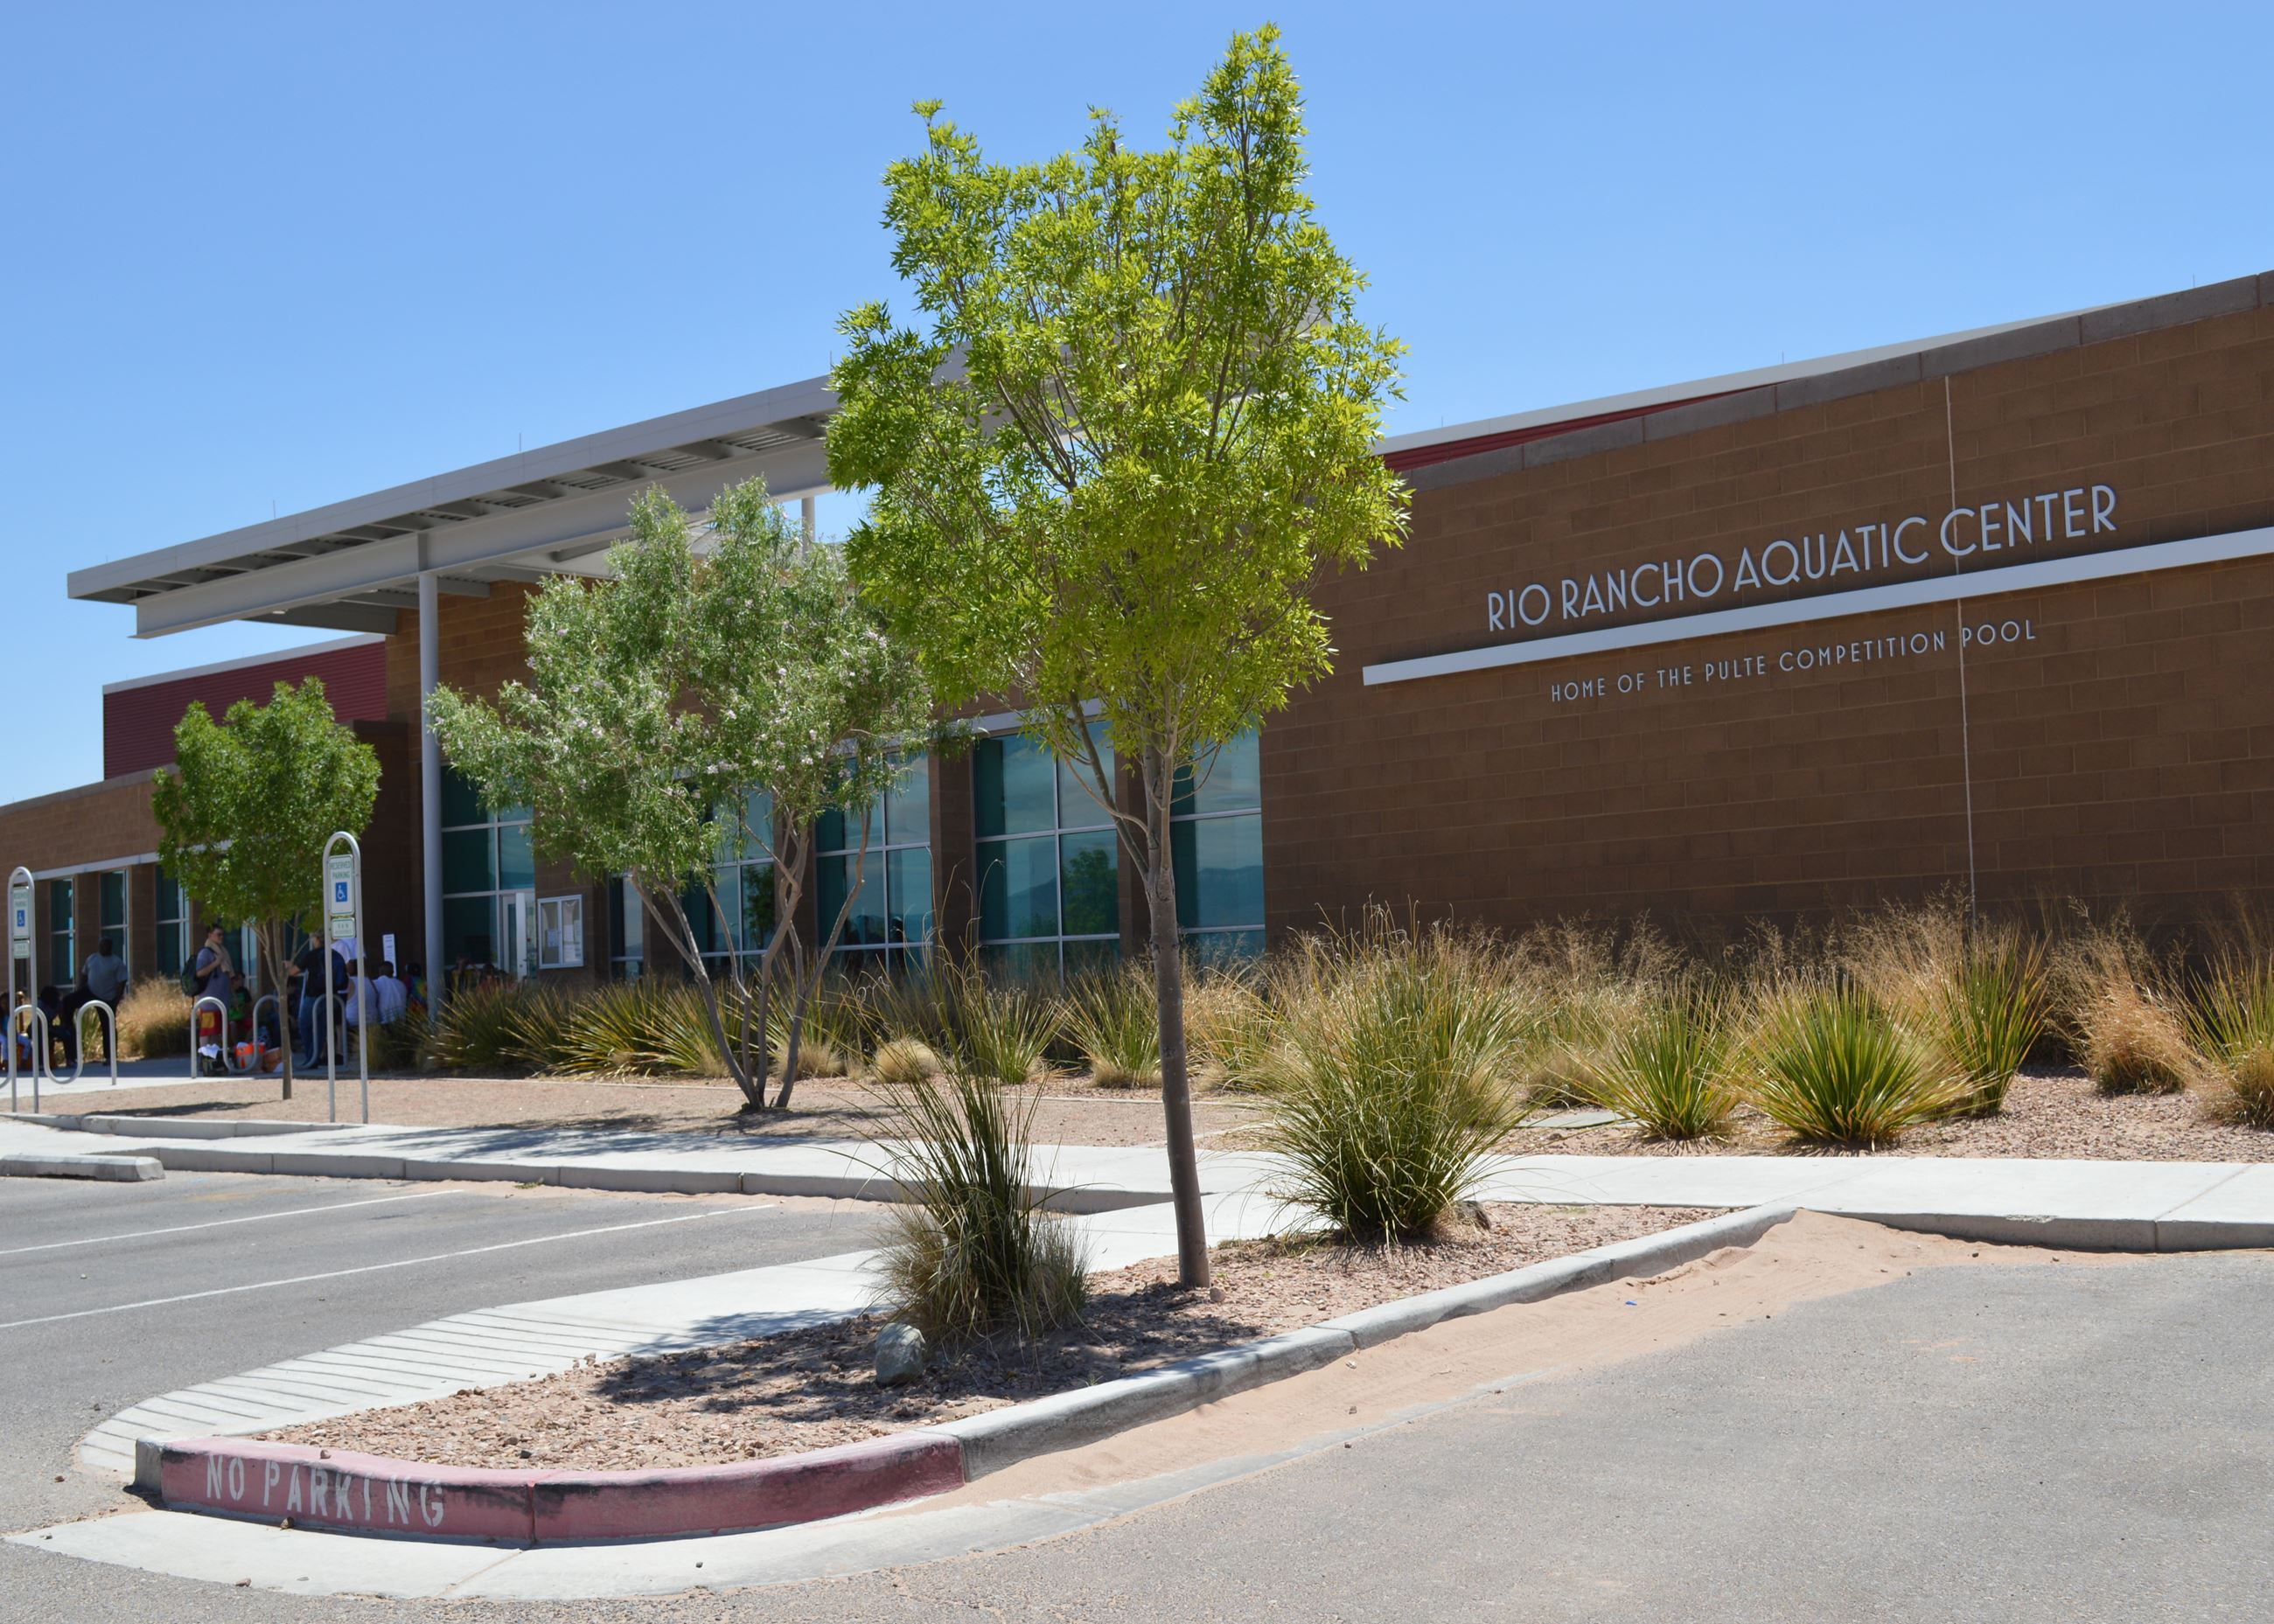 Rio Rancho Aquatic Center